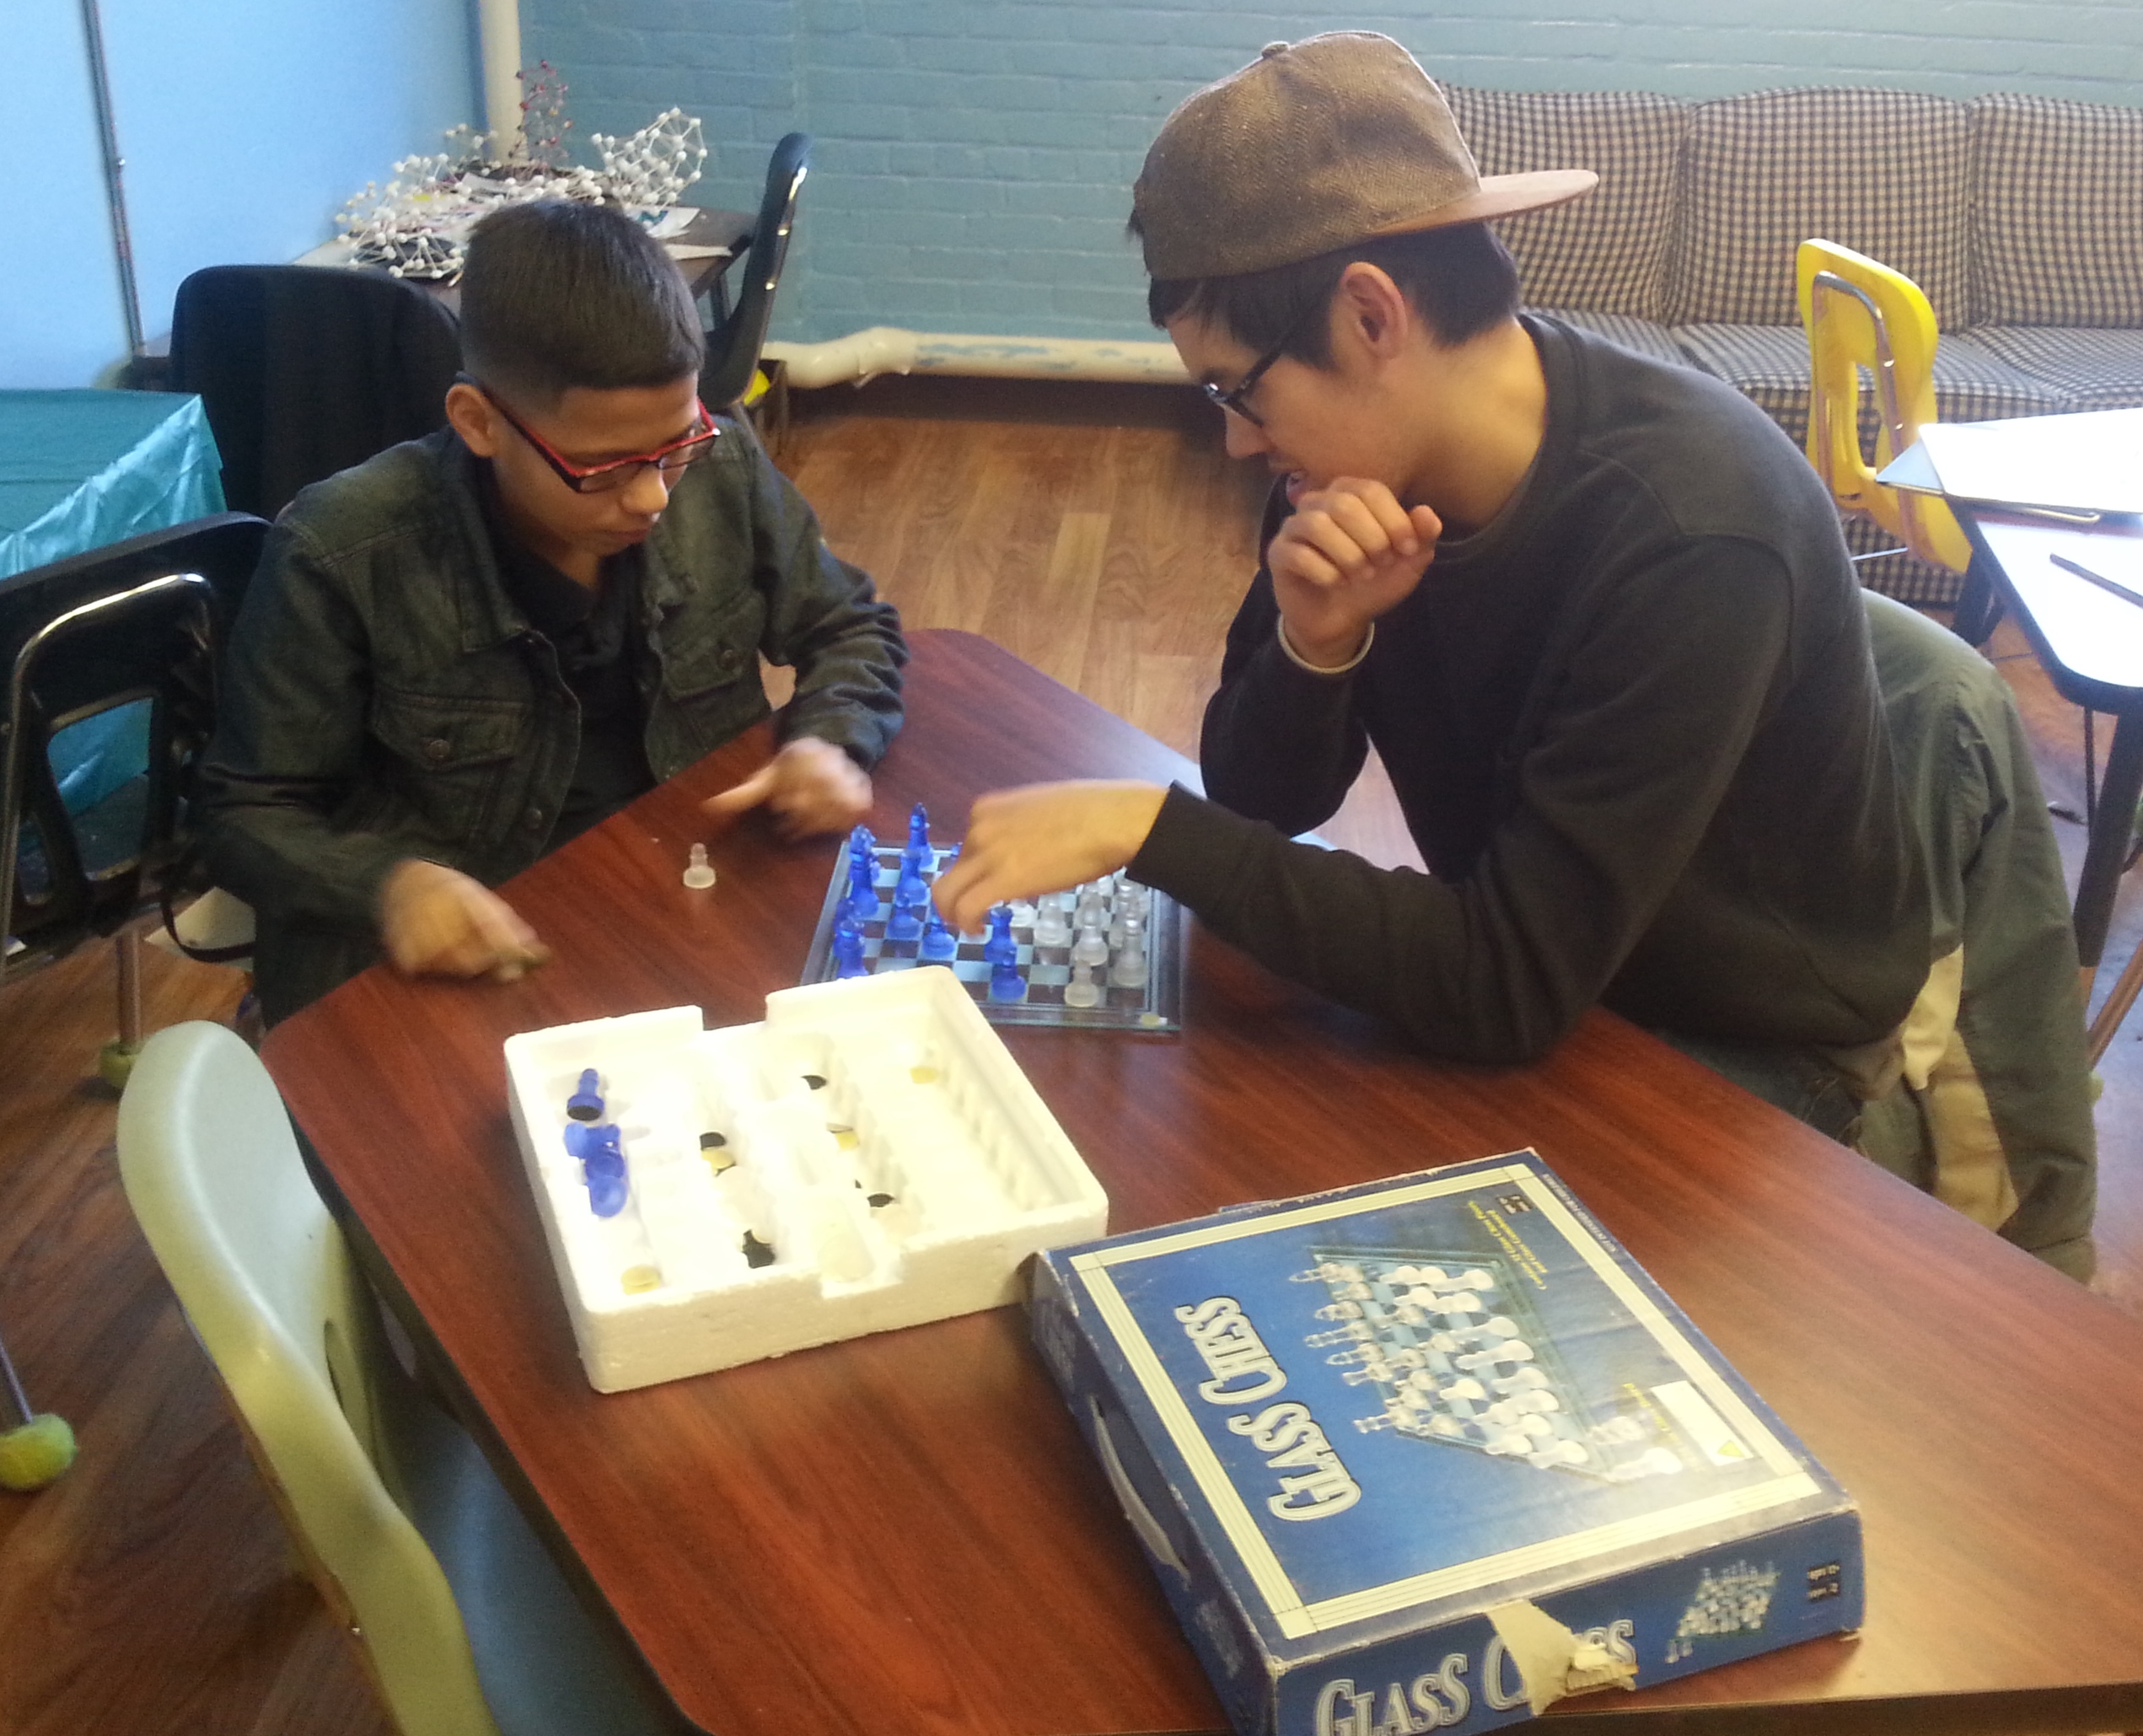 Jorge And ben playing chess